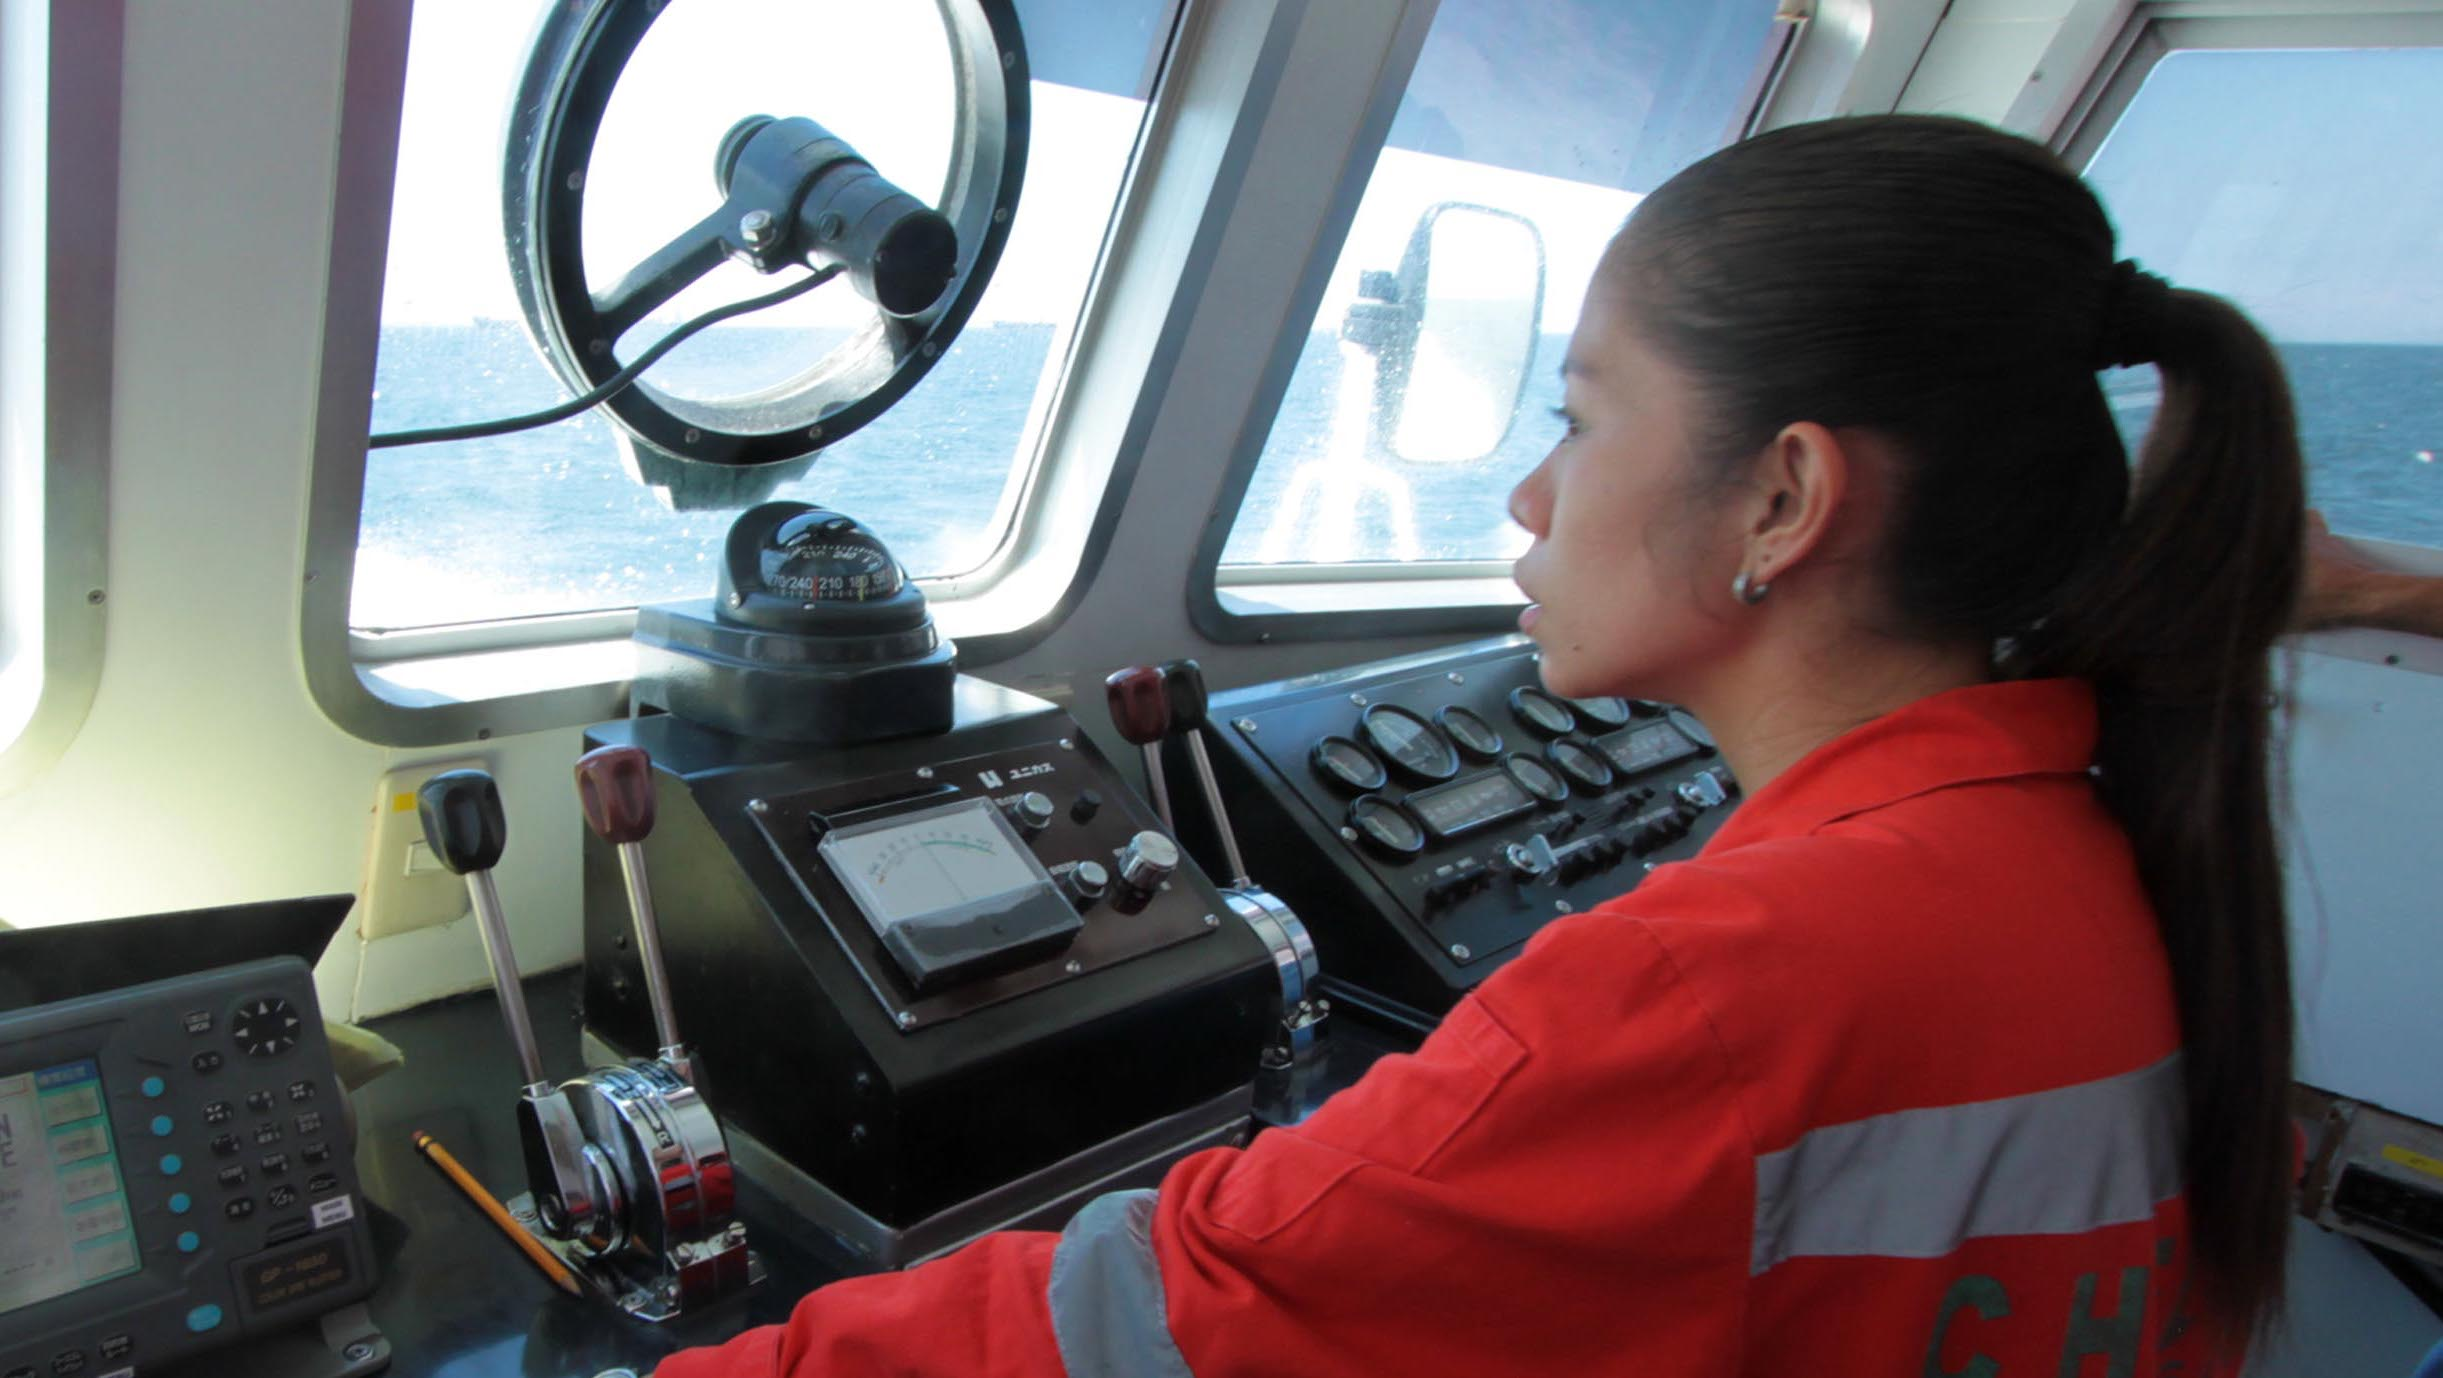 Seafarers use #ChooseToChallenge hashtag for more women in shipping